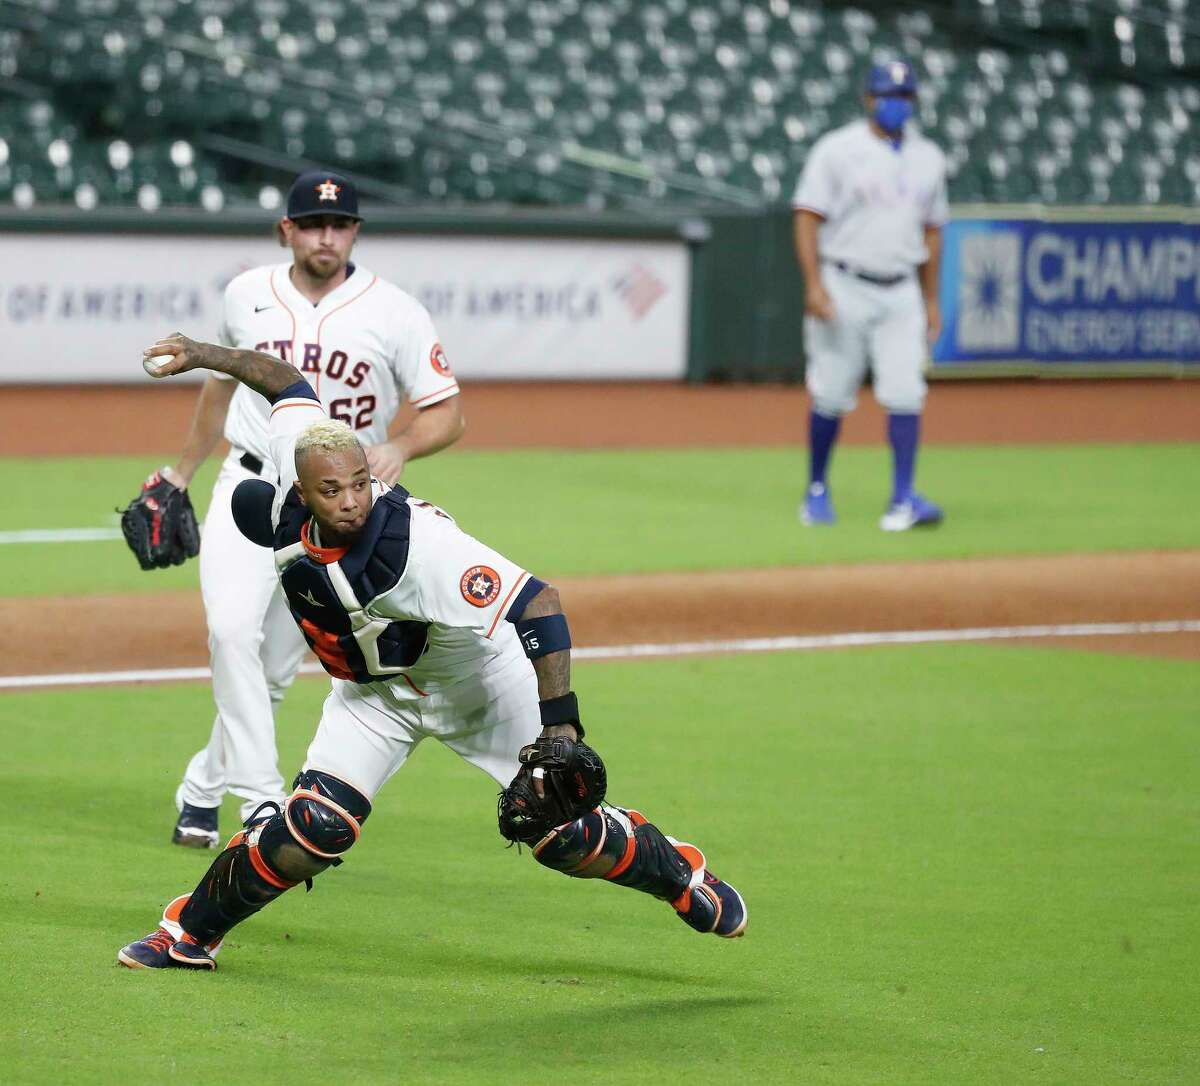 Houston Astros catcher Martin Maldonado (15) tries to make the throw to first base in an effort to get Texas Rangers right fielder Joey Gallo (13) out at first but he was able to advance and score a runner on the throwing error during the tenth inning of an MLB baseball game at Minute Maid Park, Tuesday, September 1, 2020, in Houston.